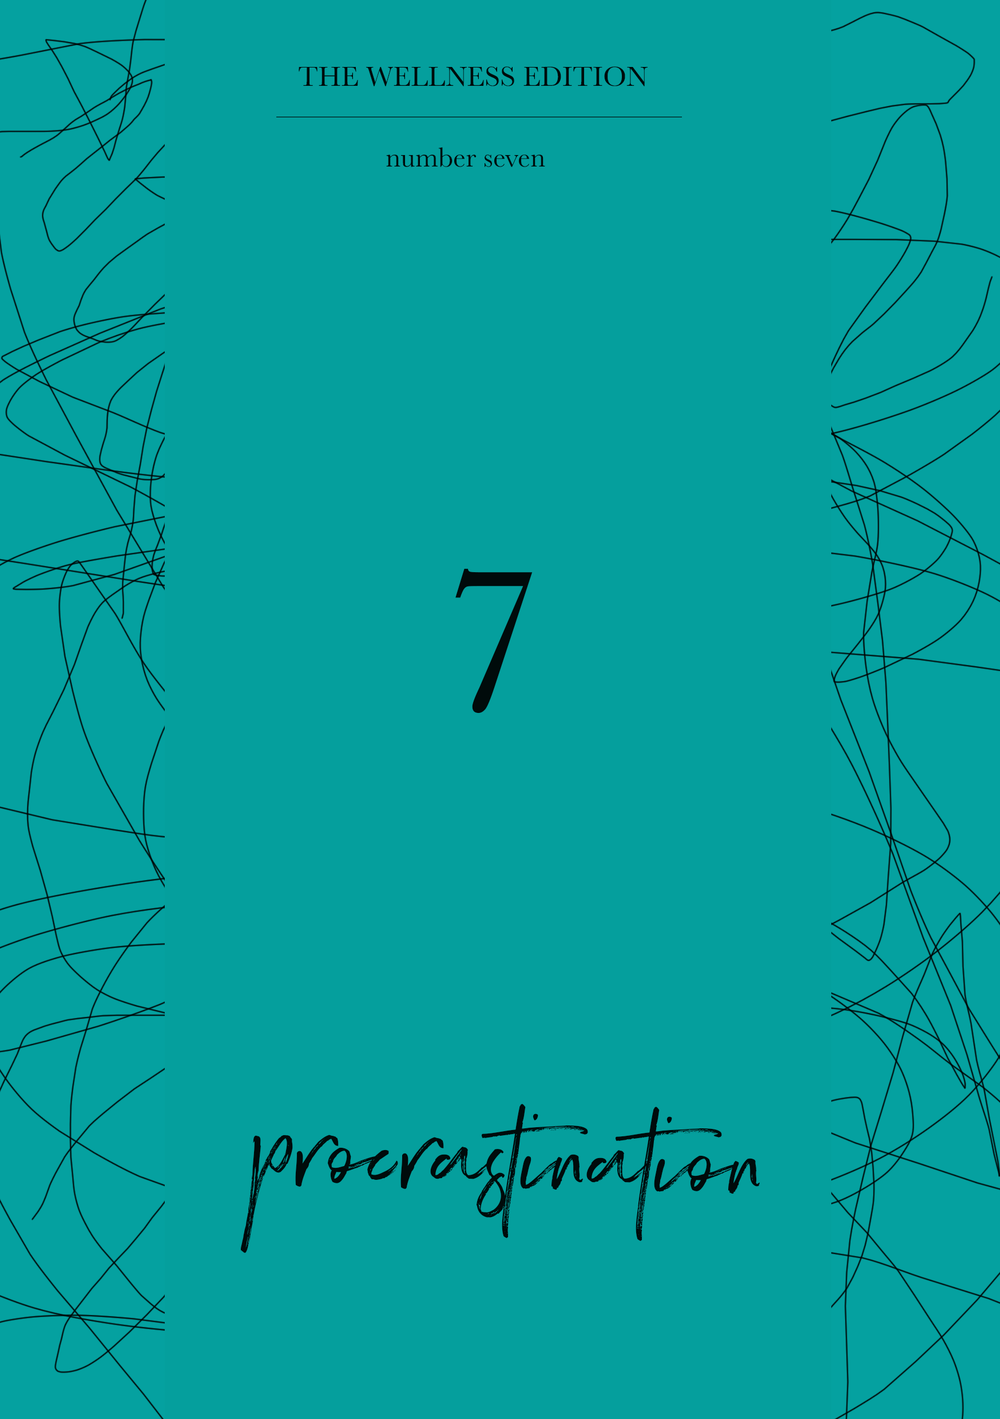 The Wellness Edition No. 7 by Phylleli. Dealing with procrastination. Why we should develop better routines for ourselves and do the things that have to get done instead of procrastinating because, let's be honest. Procrastination makes us feel miserable. Even though we know it, most of us still procrastinate. Establish new routines and get out of the procrastination trap.